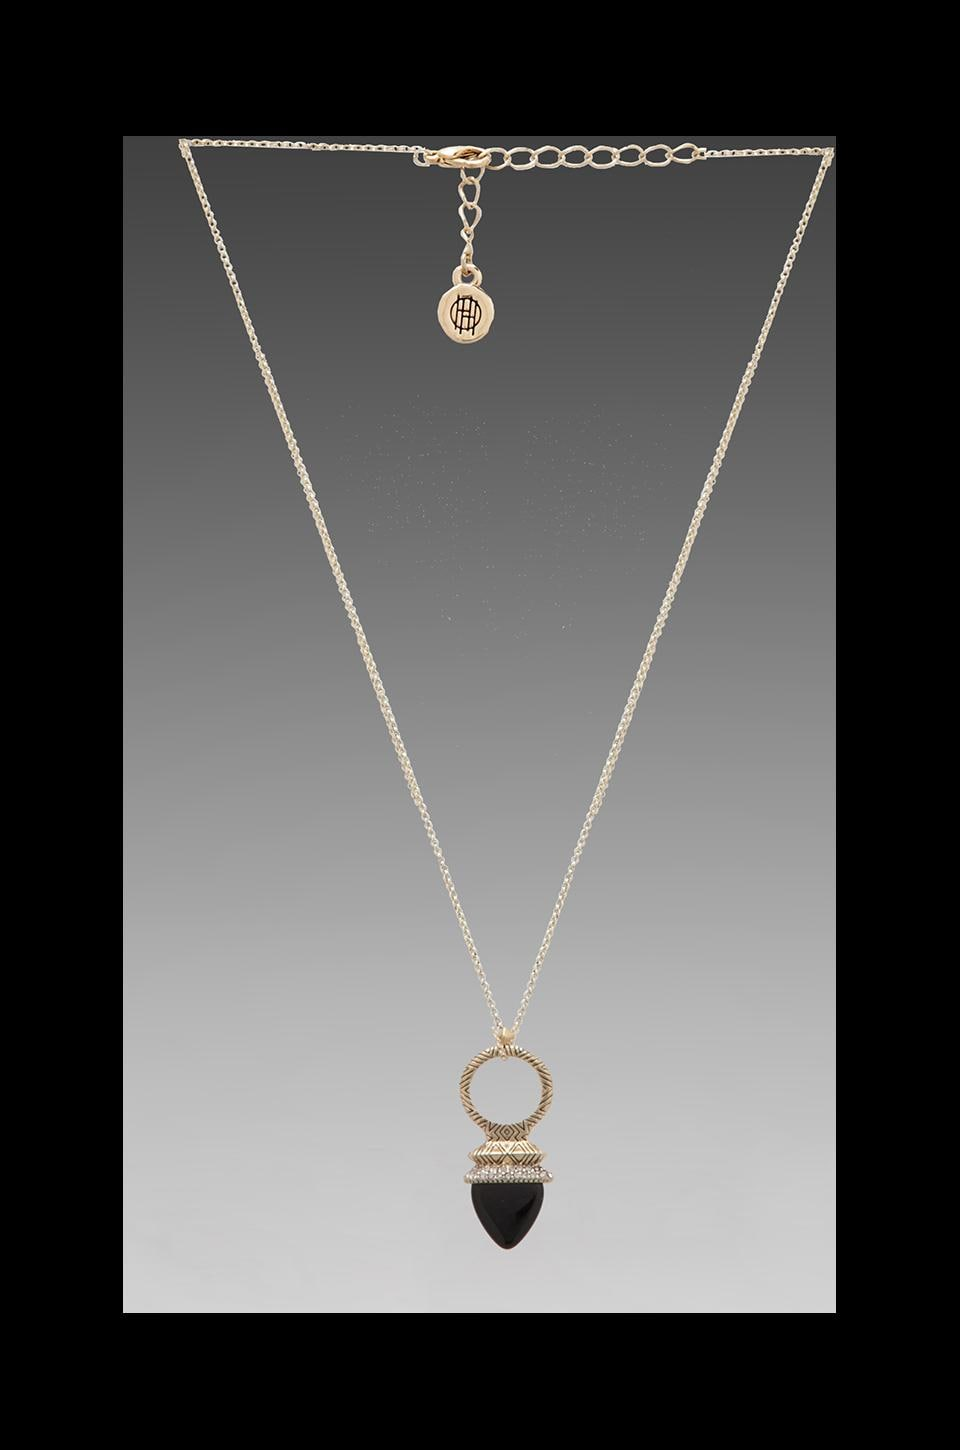 House of Harlow 1960 House of Harlow Plectra Pendant Necklace in Gold/Black Onyx